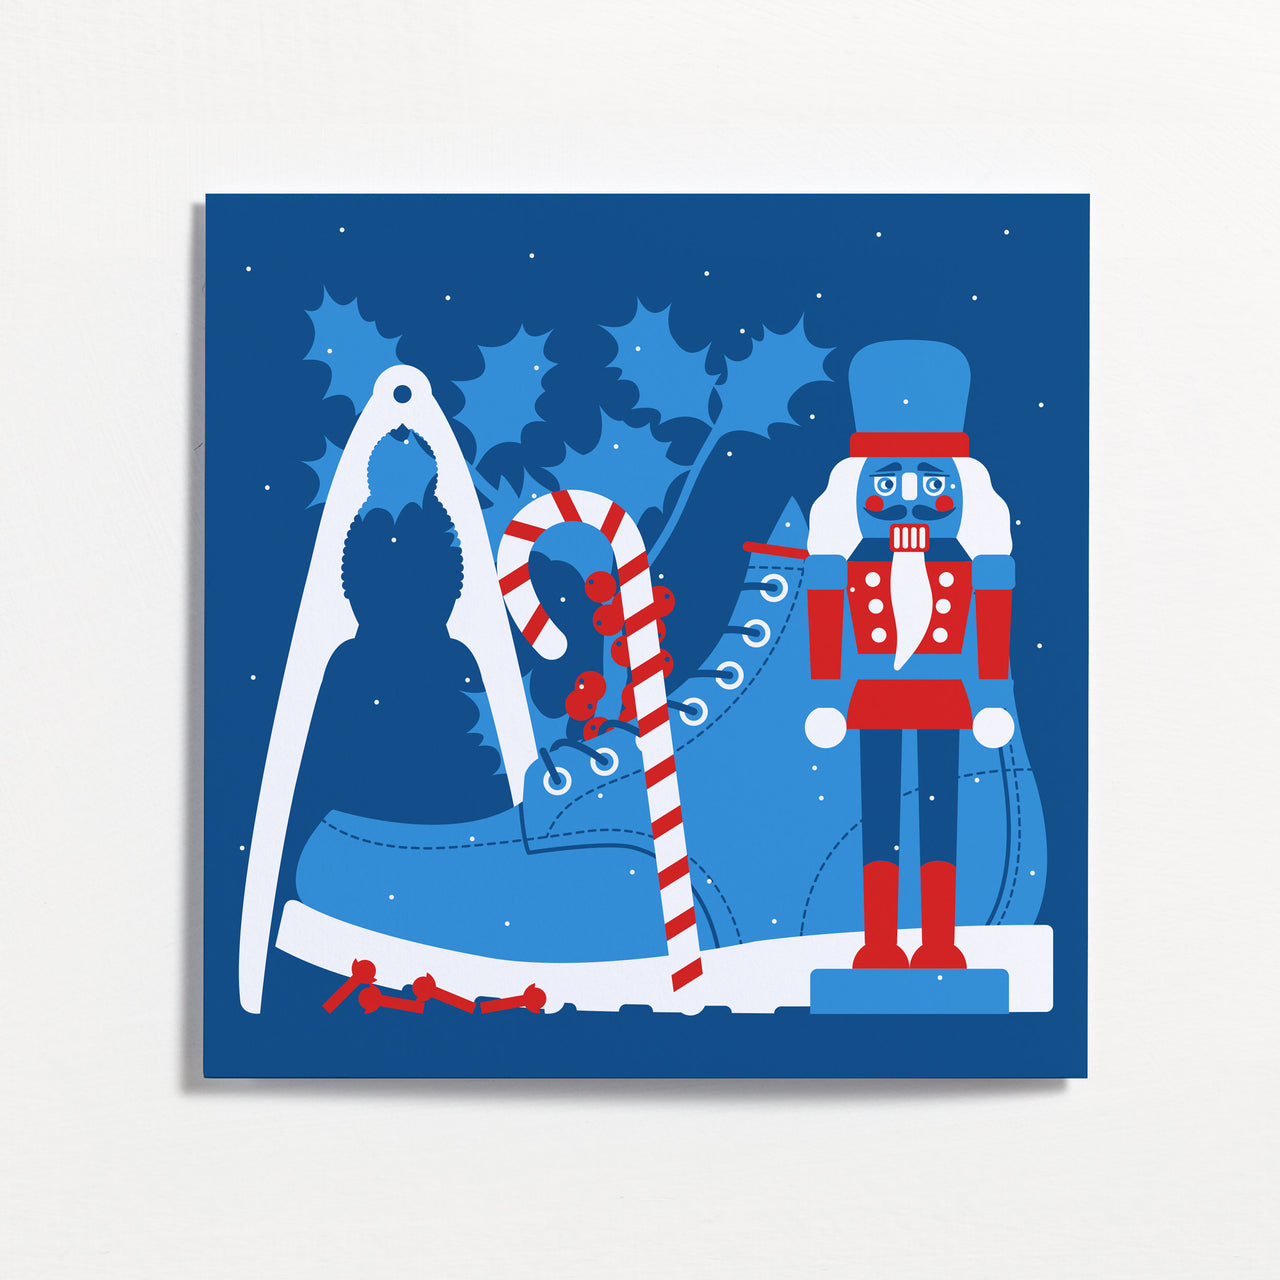 Nutcracker Winter Frieze Christmas Card by Crispin Finn